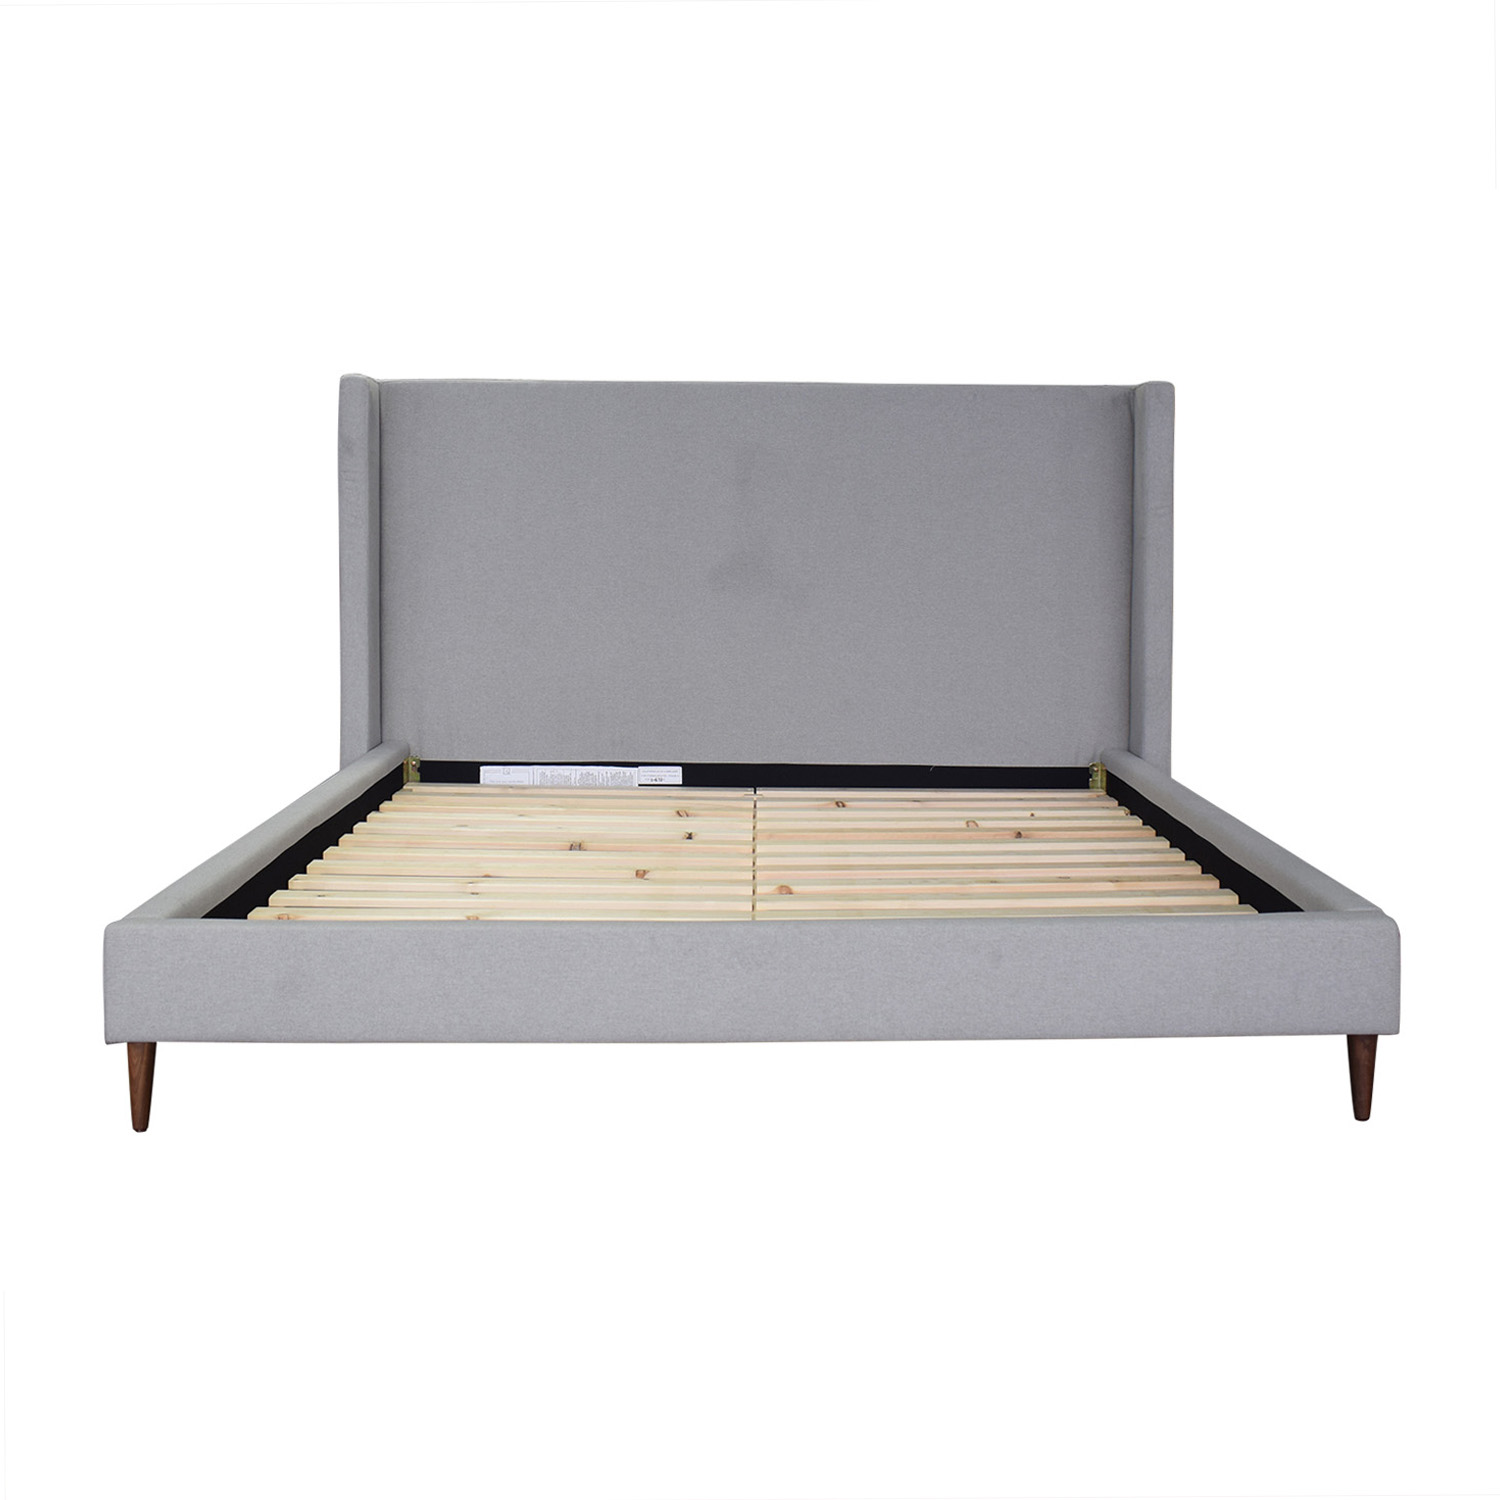 Interior Define Oliver Beige Platform King Bed Frame beige